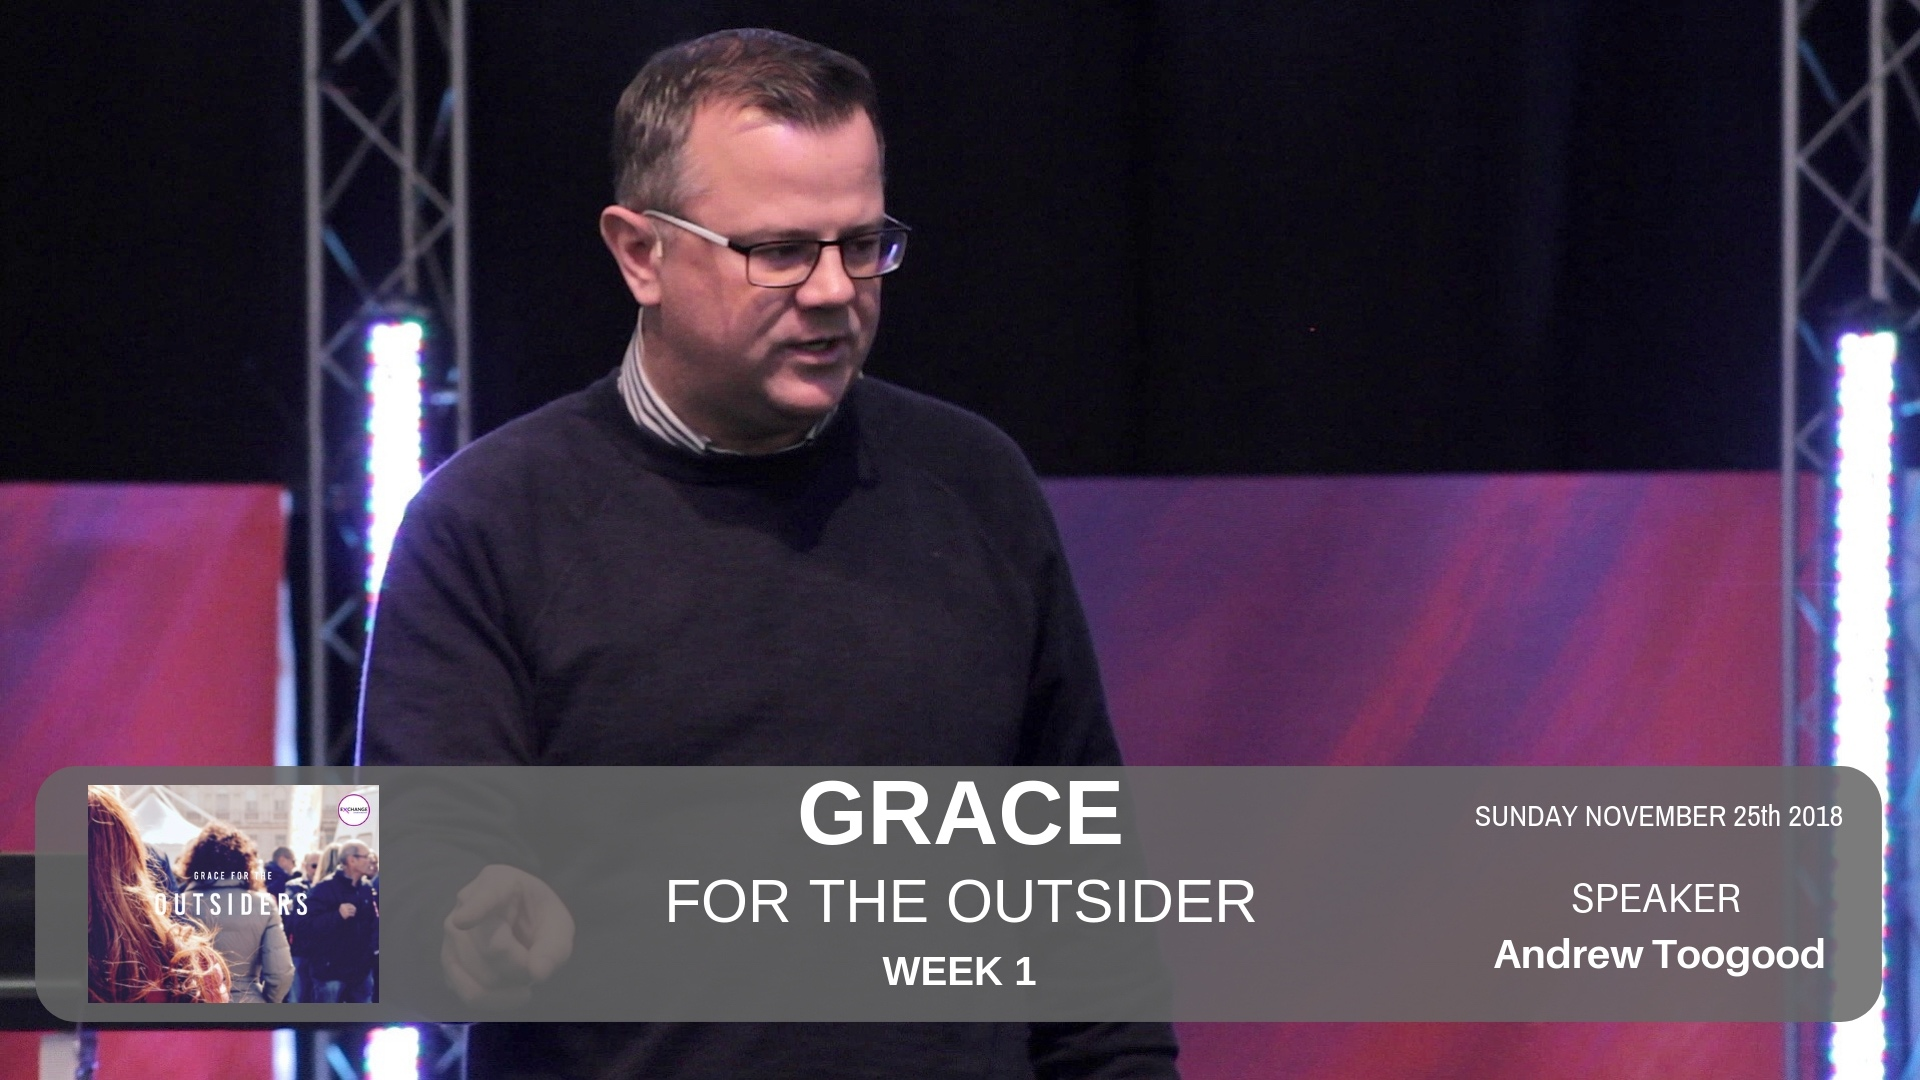 Grace for the outsider - Week 1